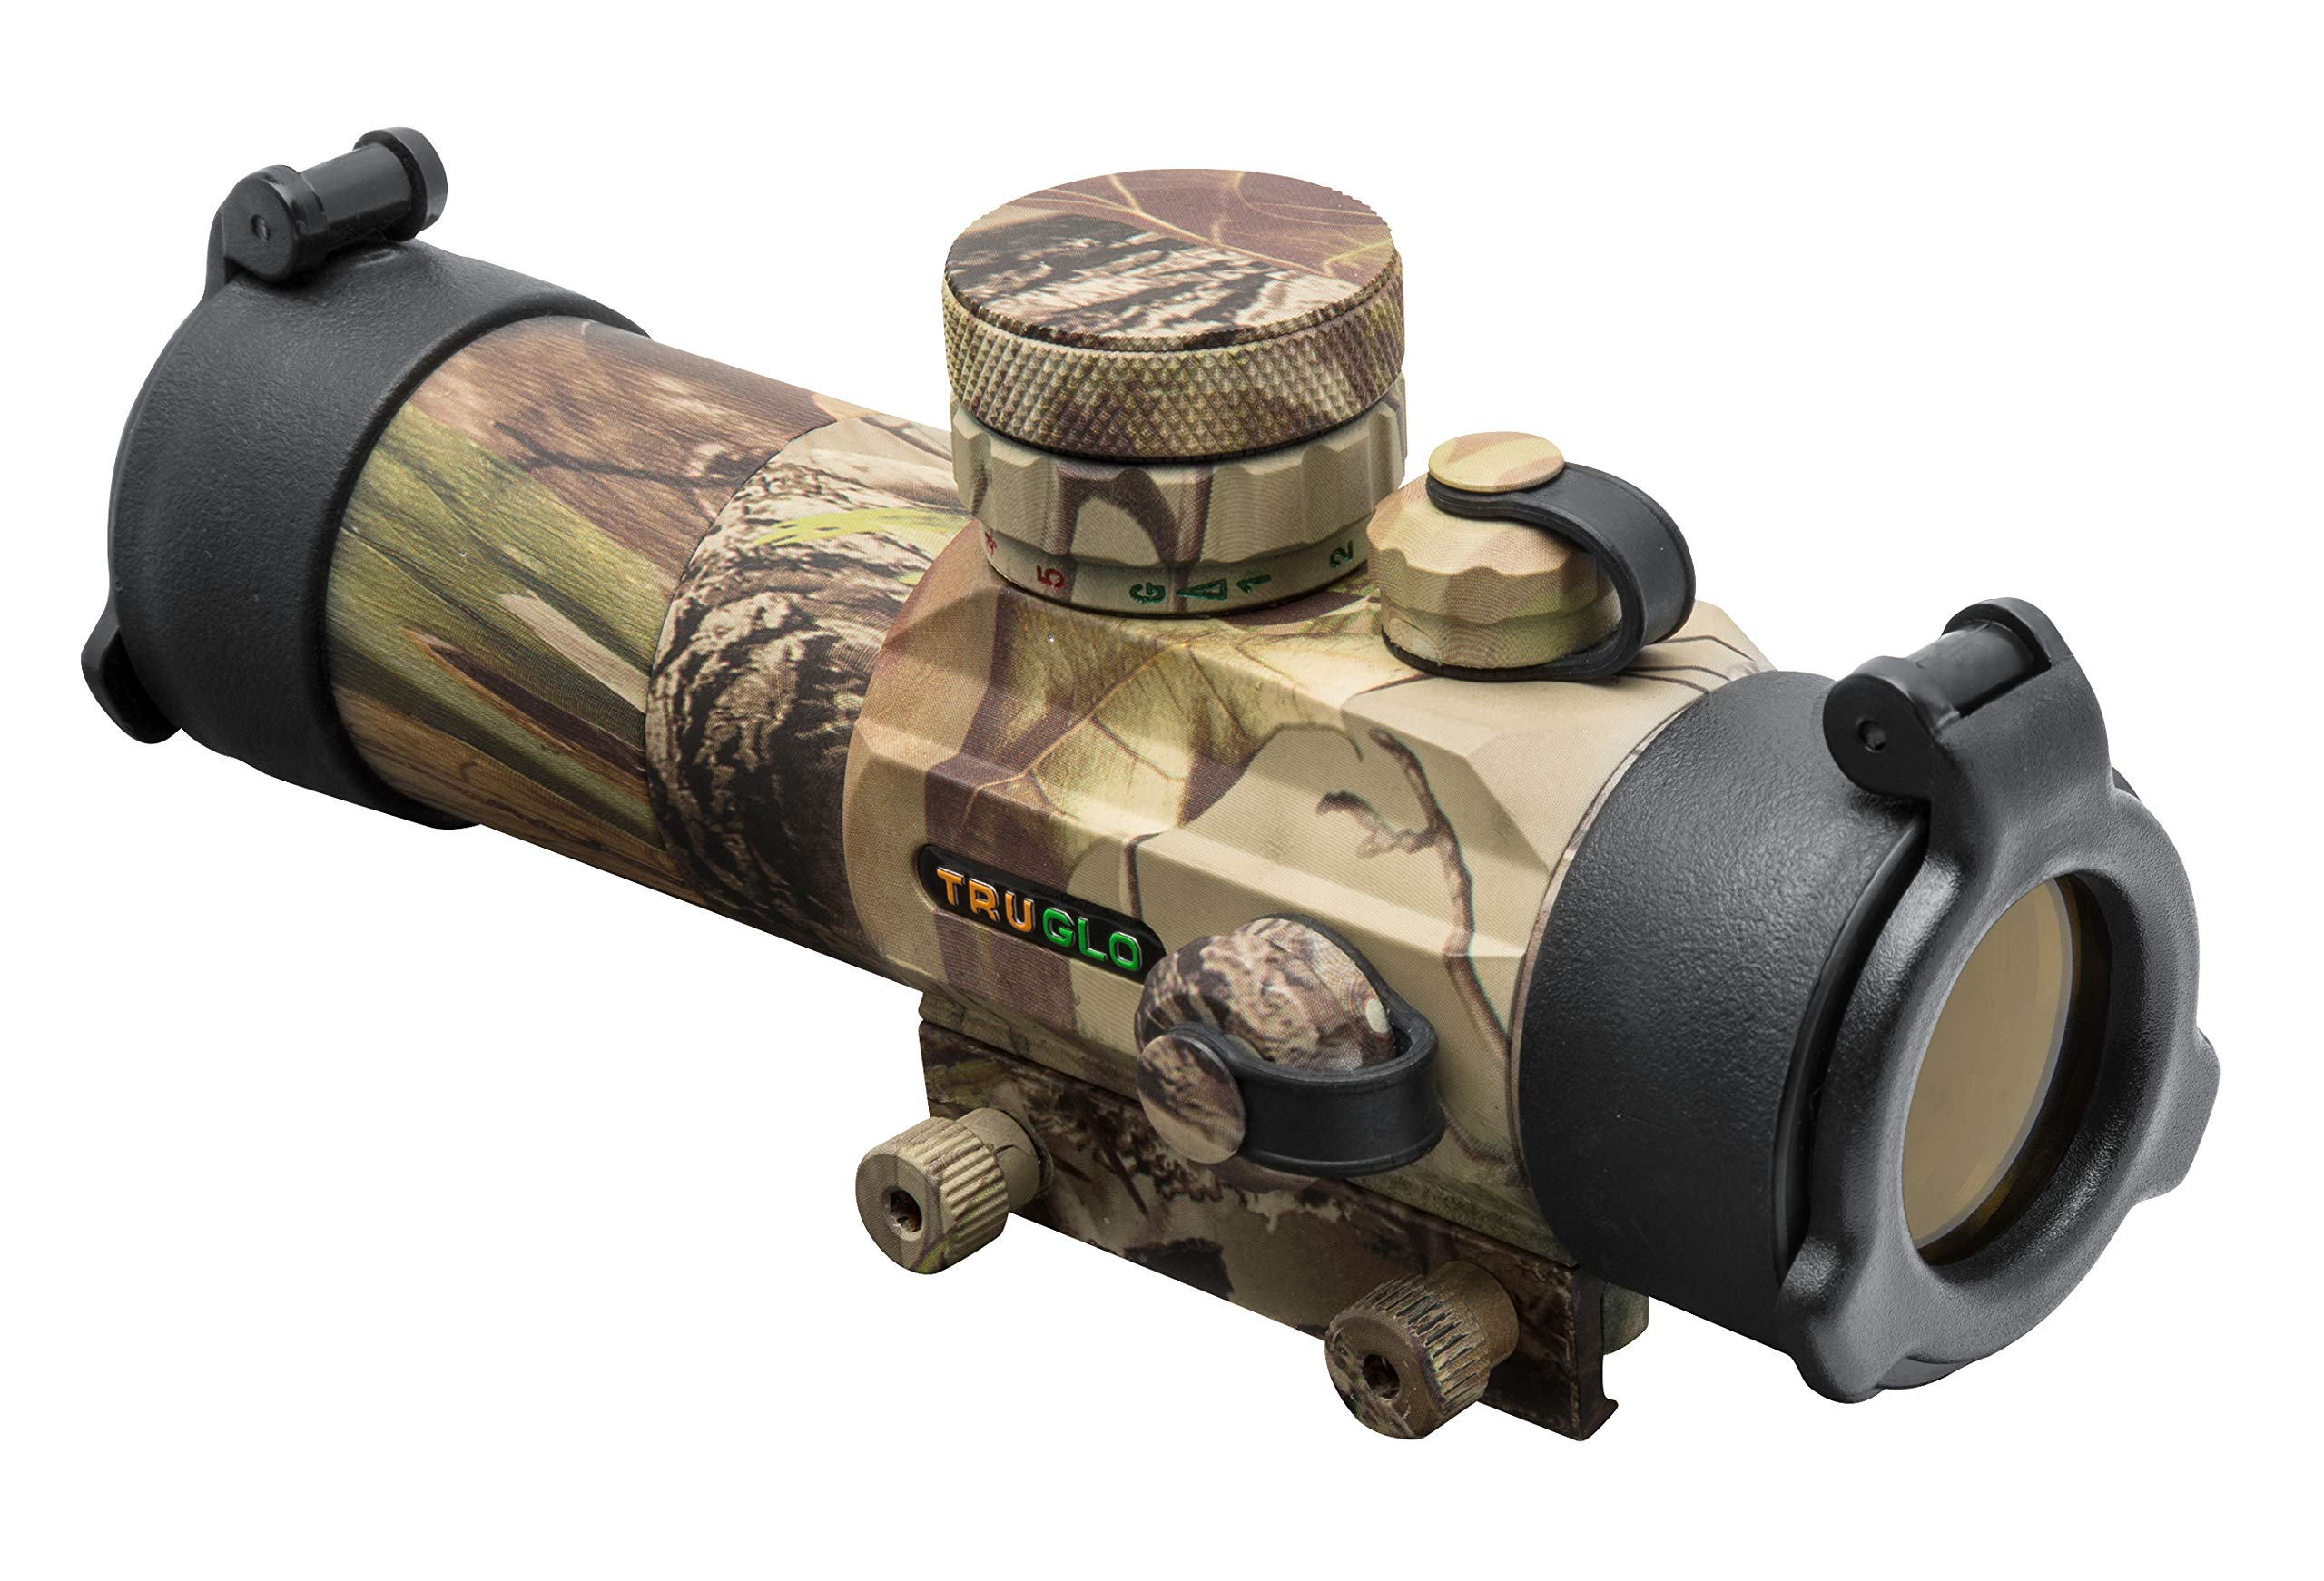 TRUGLO Red Dot Dual-Color Sight 30mm Gobble-Dot APG by TRUGLO